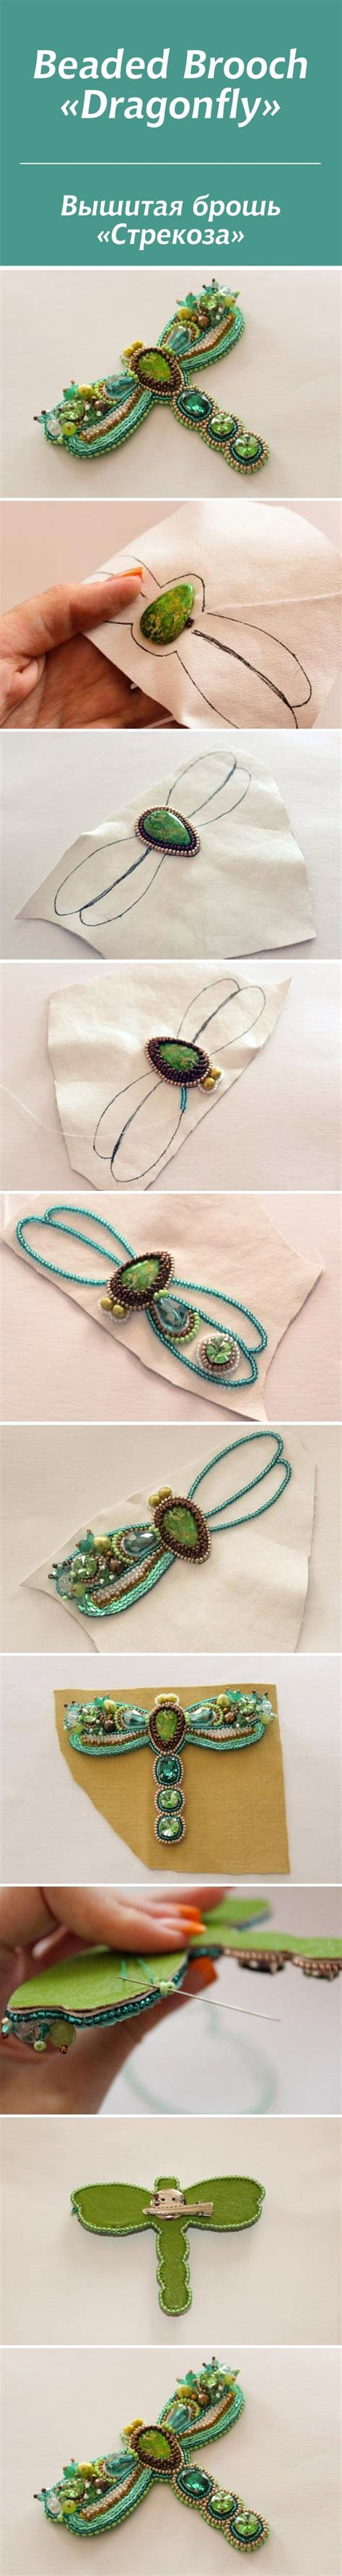 25 best ideas about beaded dragonfly on